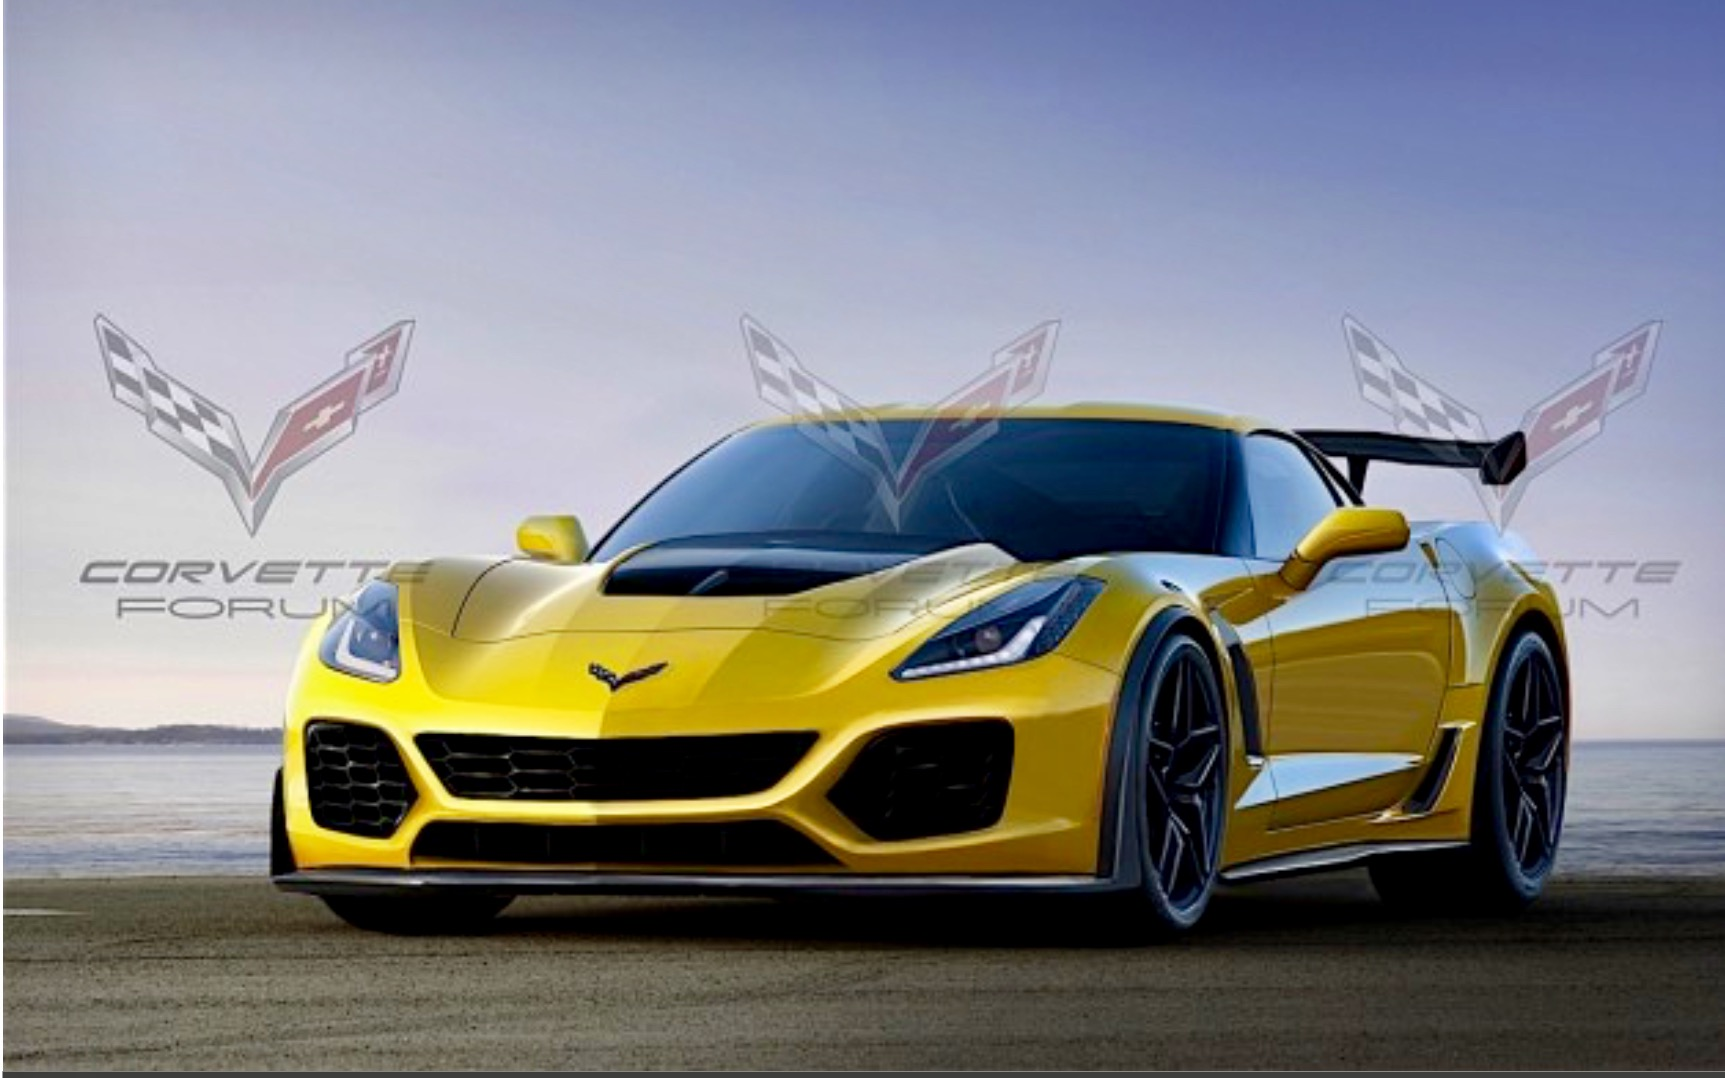 picture credit and thanks to corvetteforum